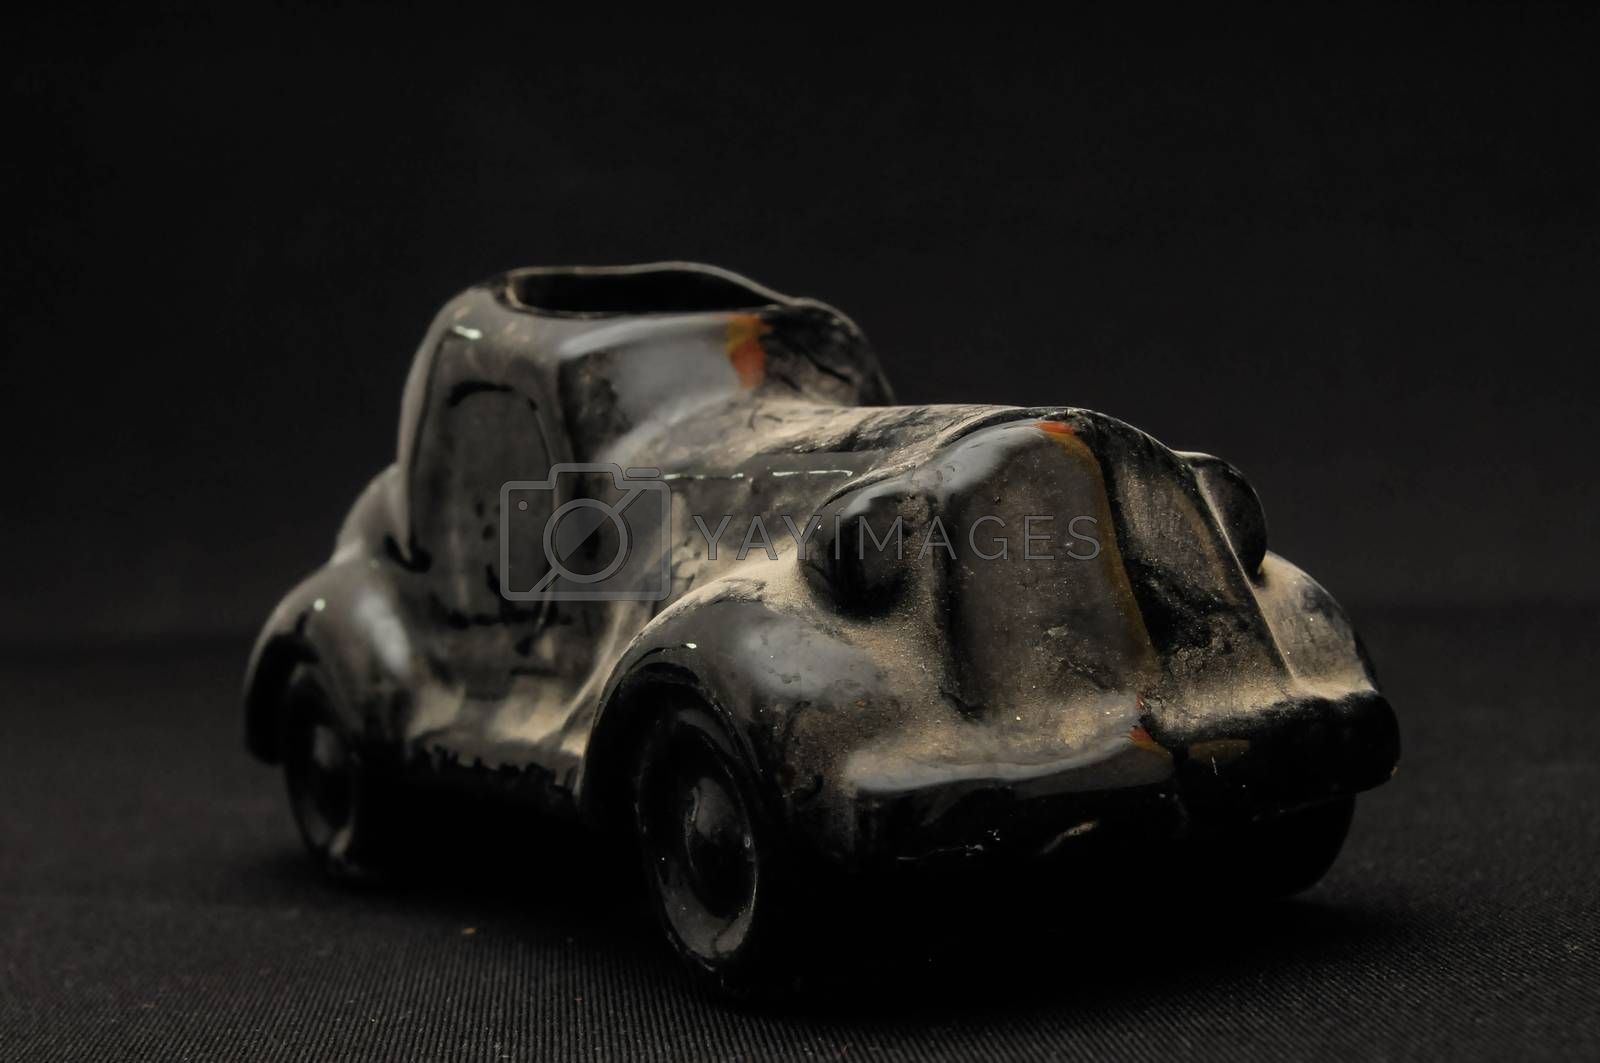 Royalty free image of Vintage car clay model by underworld